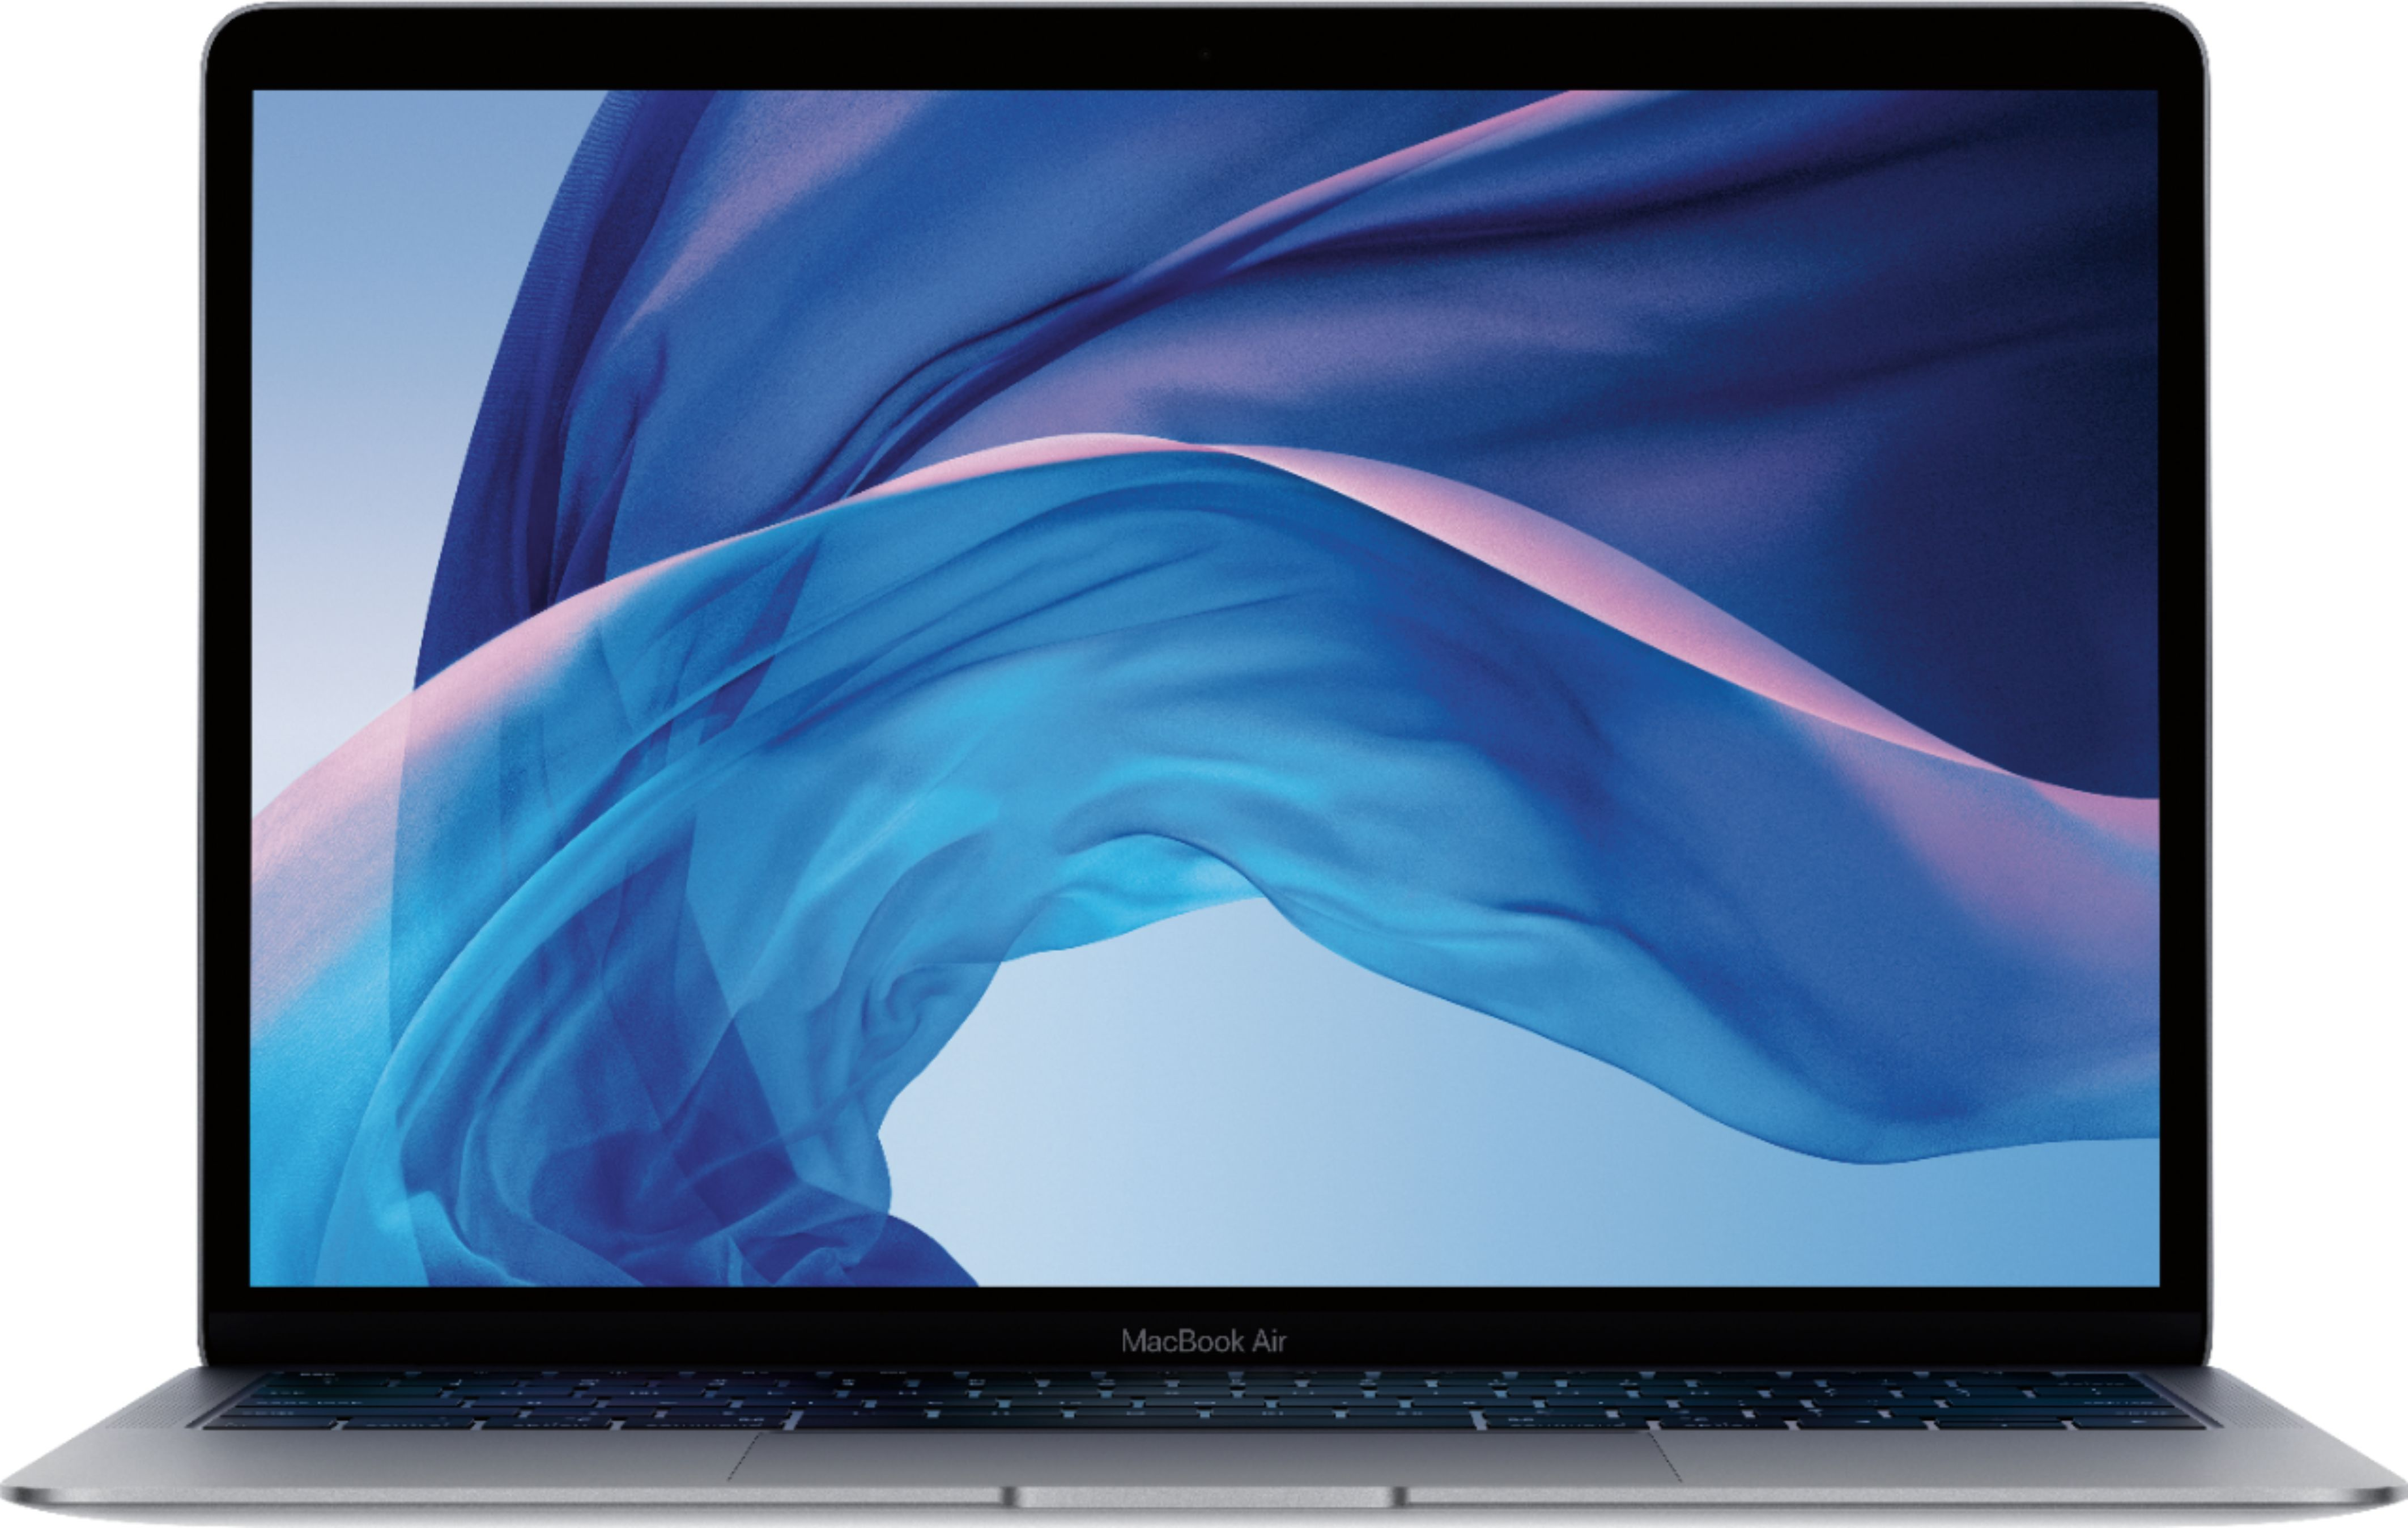 Apple Macbook Air 13 3 Laptop With Touch Id Intel Core I5 8gb Memory 128gb Solid State Drive Space Gray Mvfh2ll A Best Buy Apple Macbook Air Apple Macbook Macbook Air